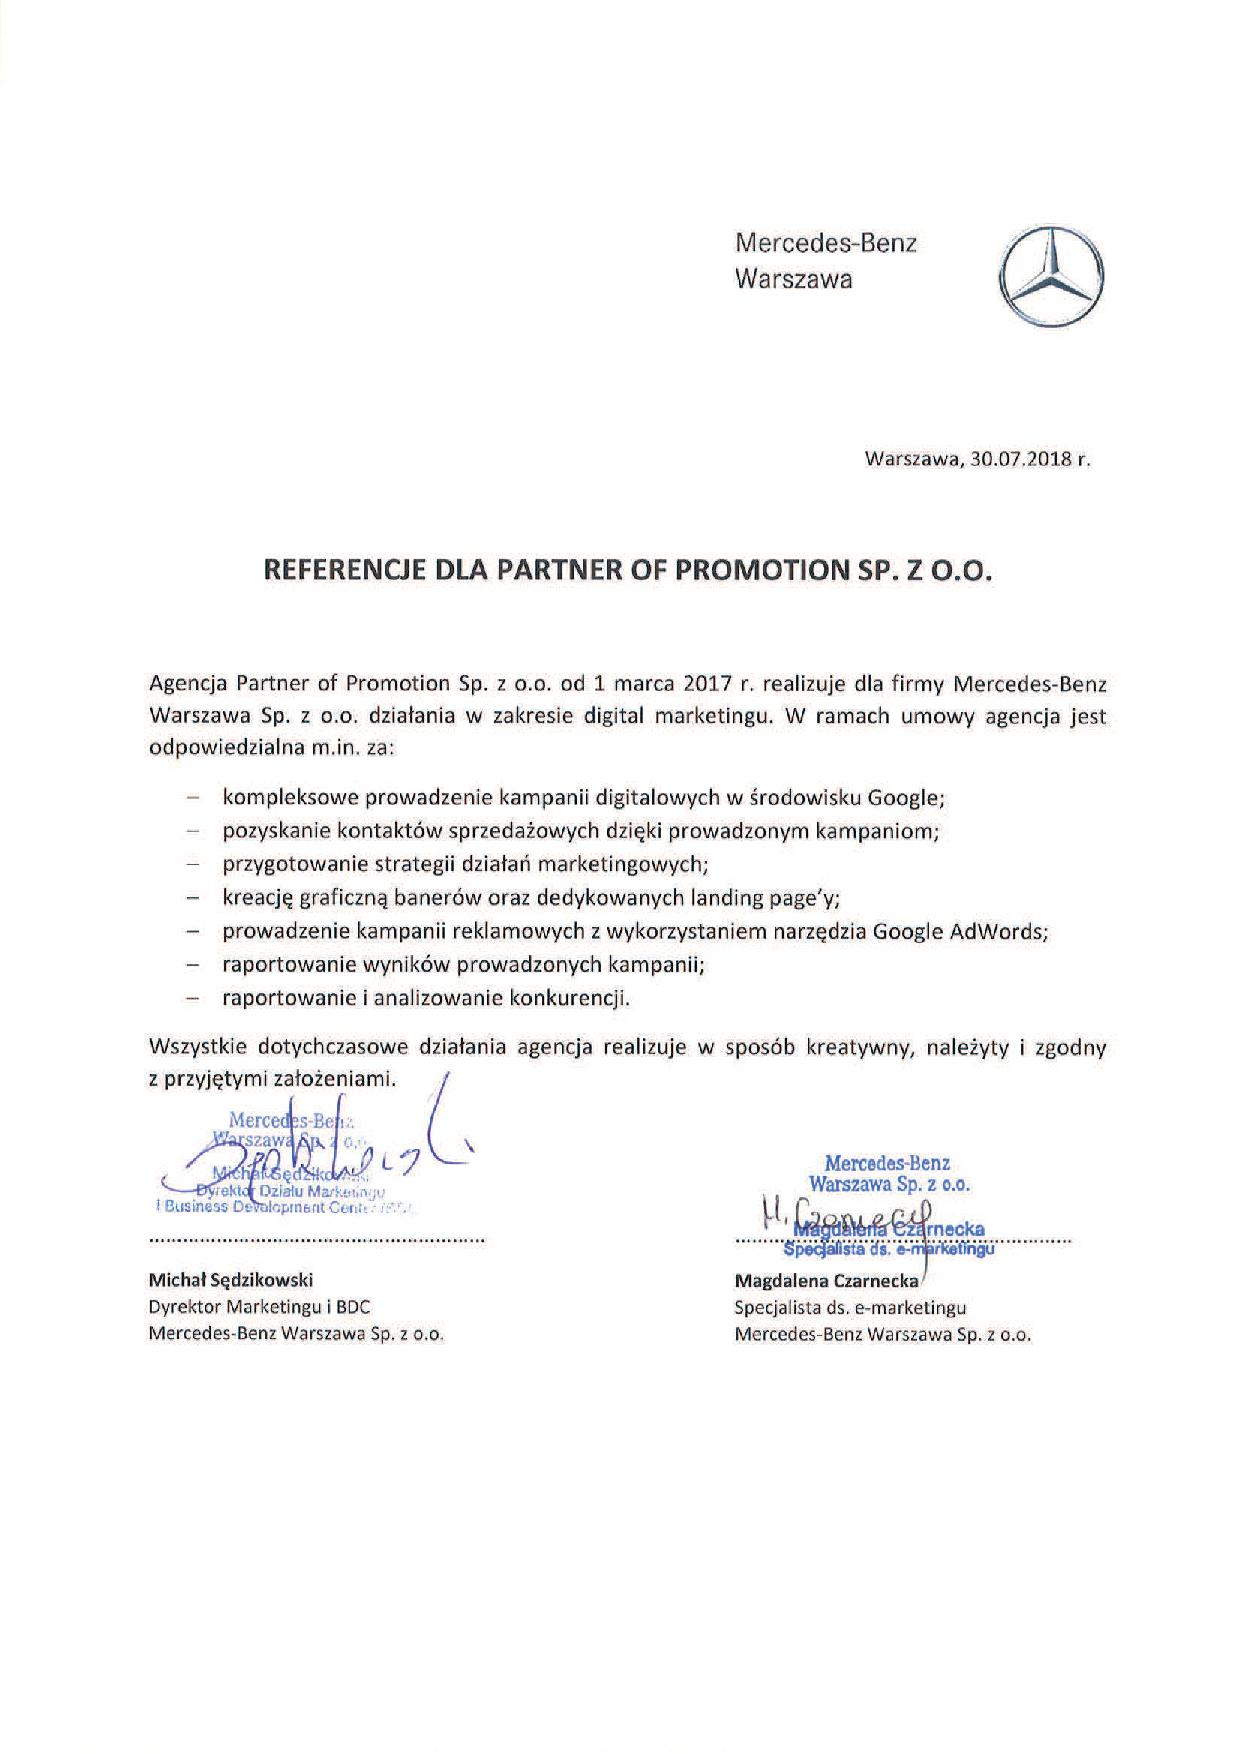 Mercedes-Benz Warszawa_referencje_digital marketing_SKAN._30072018.jpg